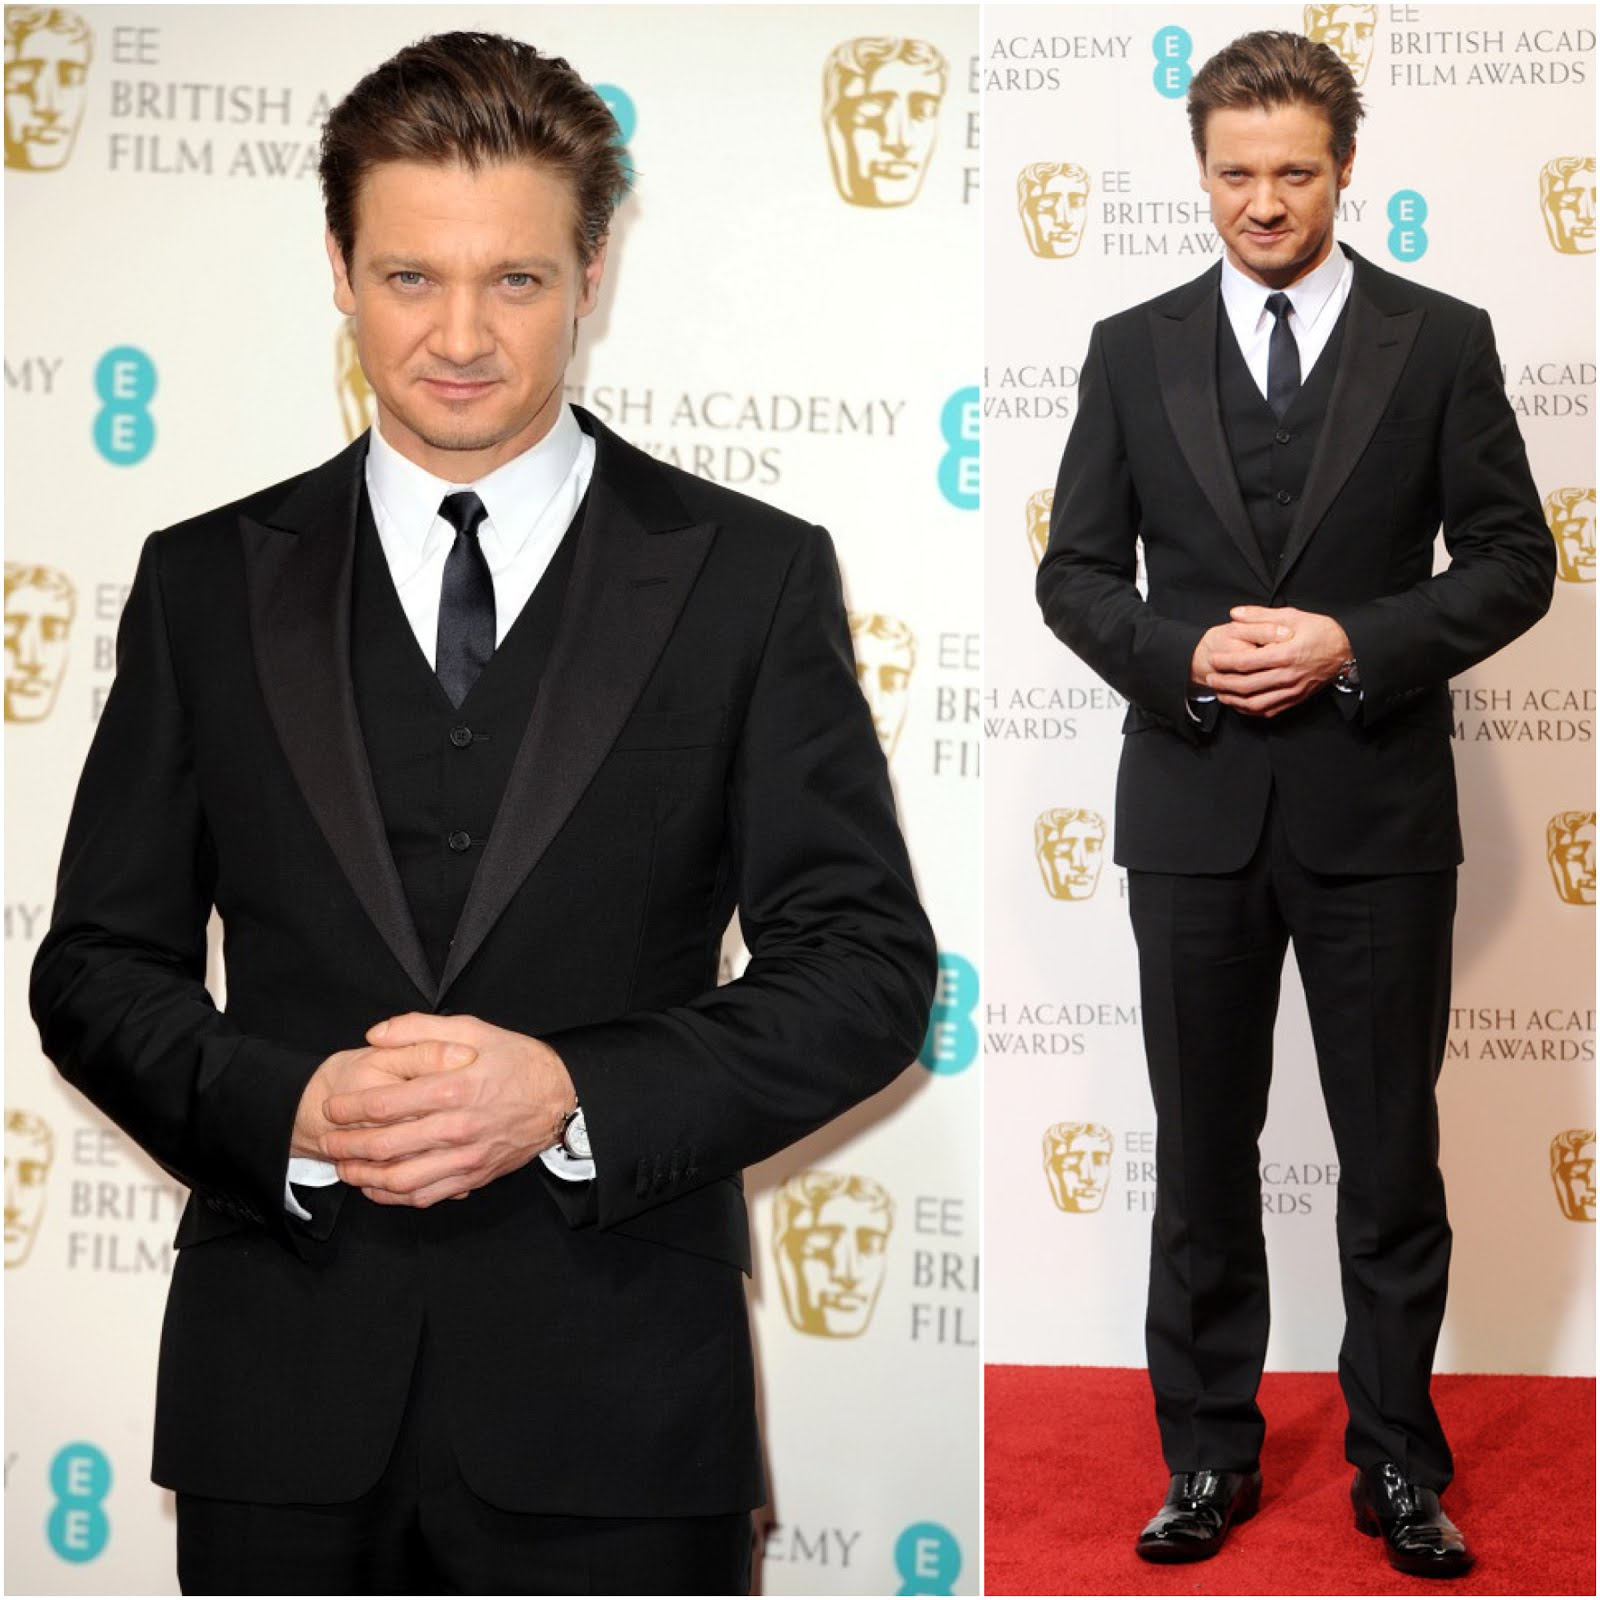 00O00 Menswear Blog Jeremy Renner in Alfred Dunhill - 66th BAFTA Awards, London